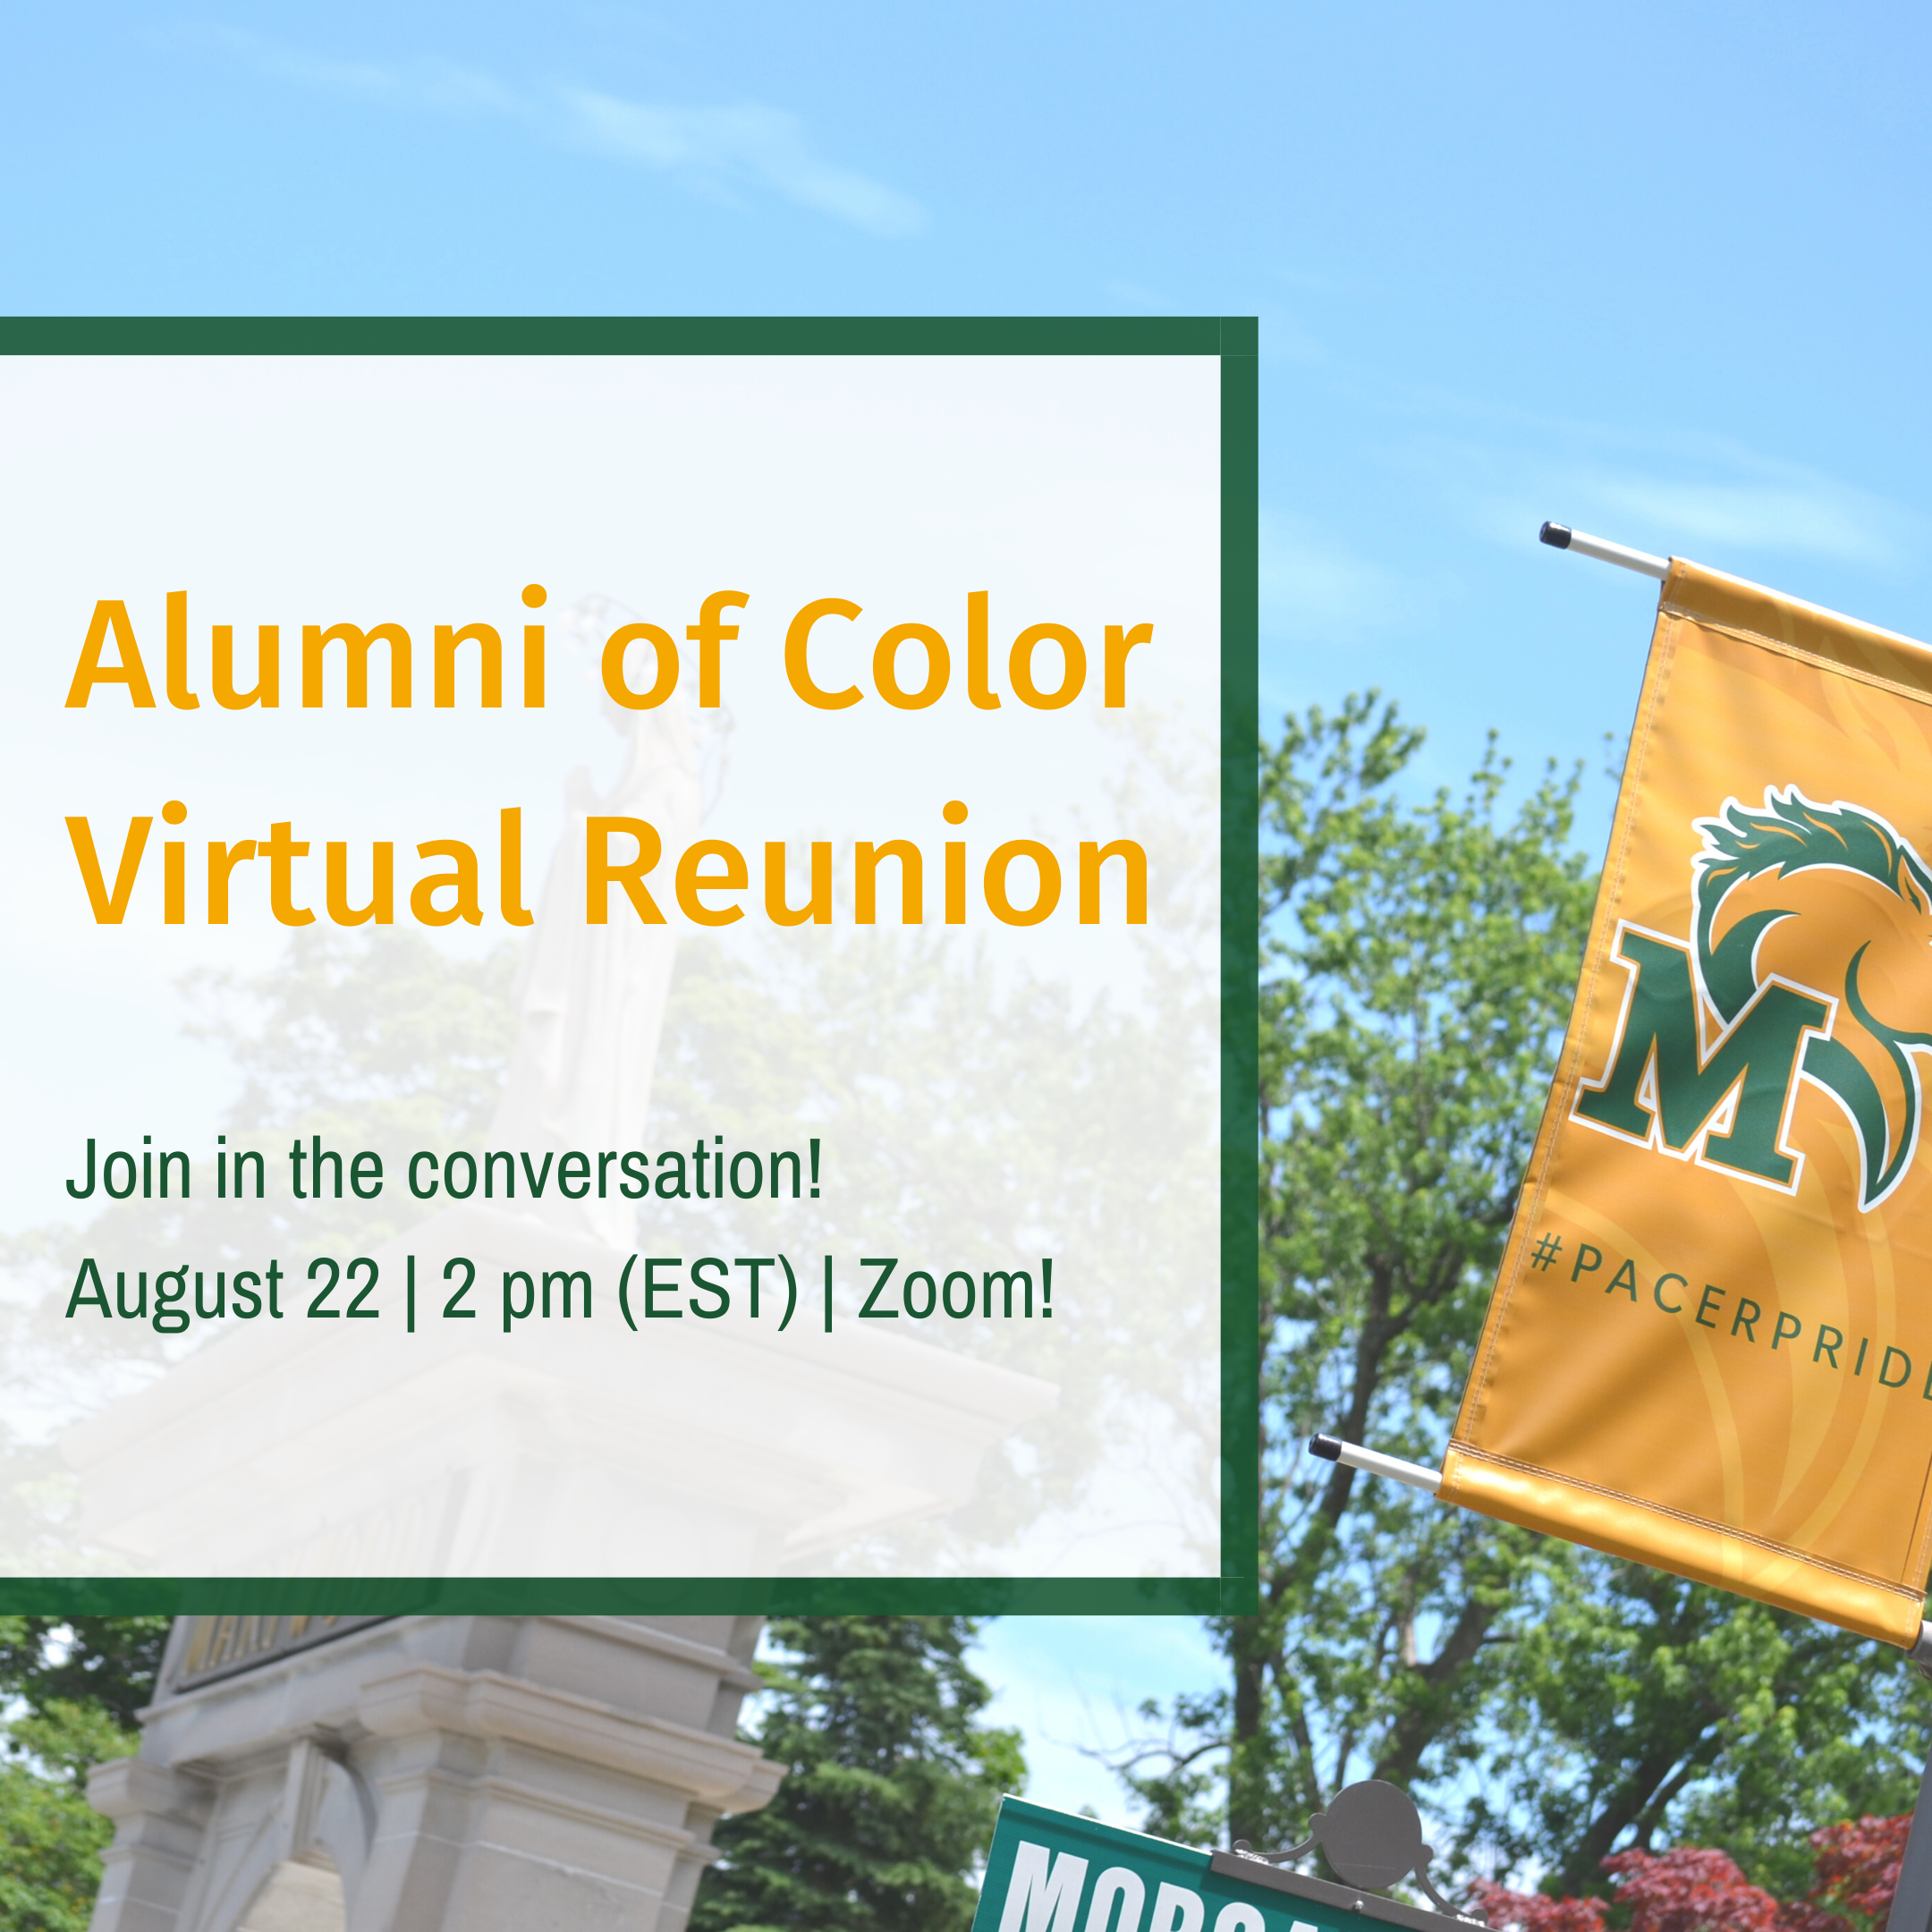 Marywood Alumni of Color Virtual Reunion